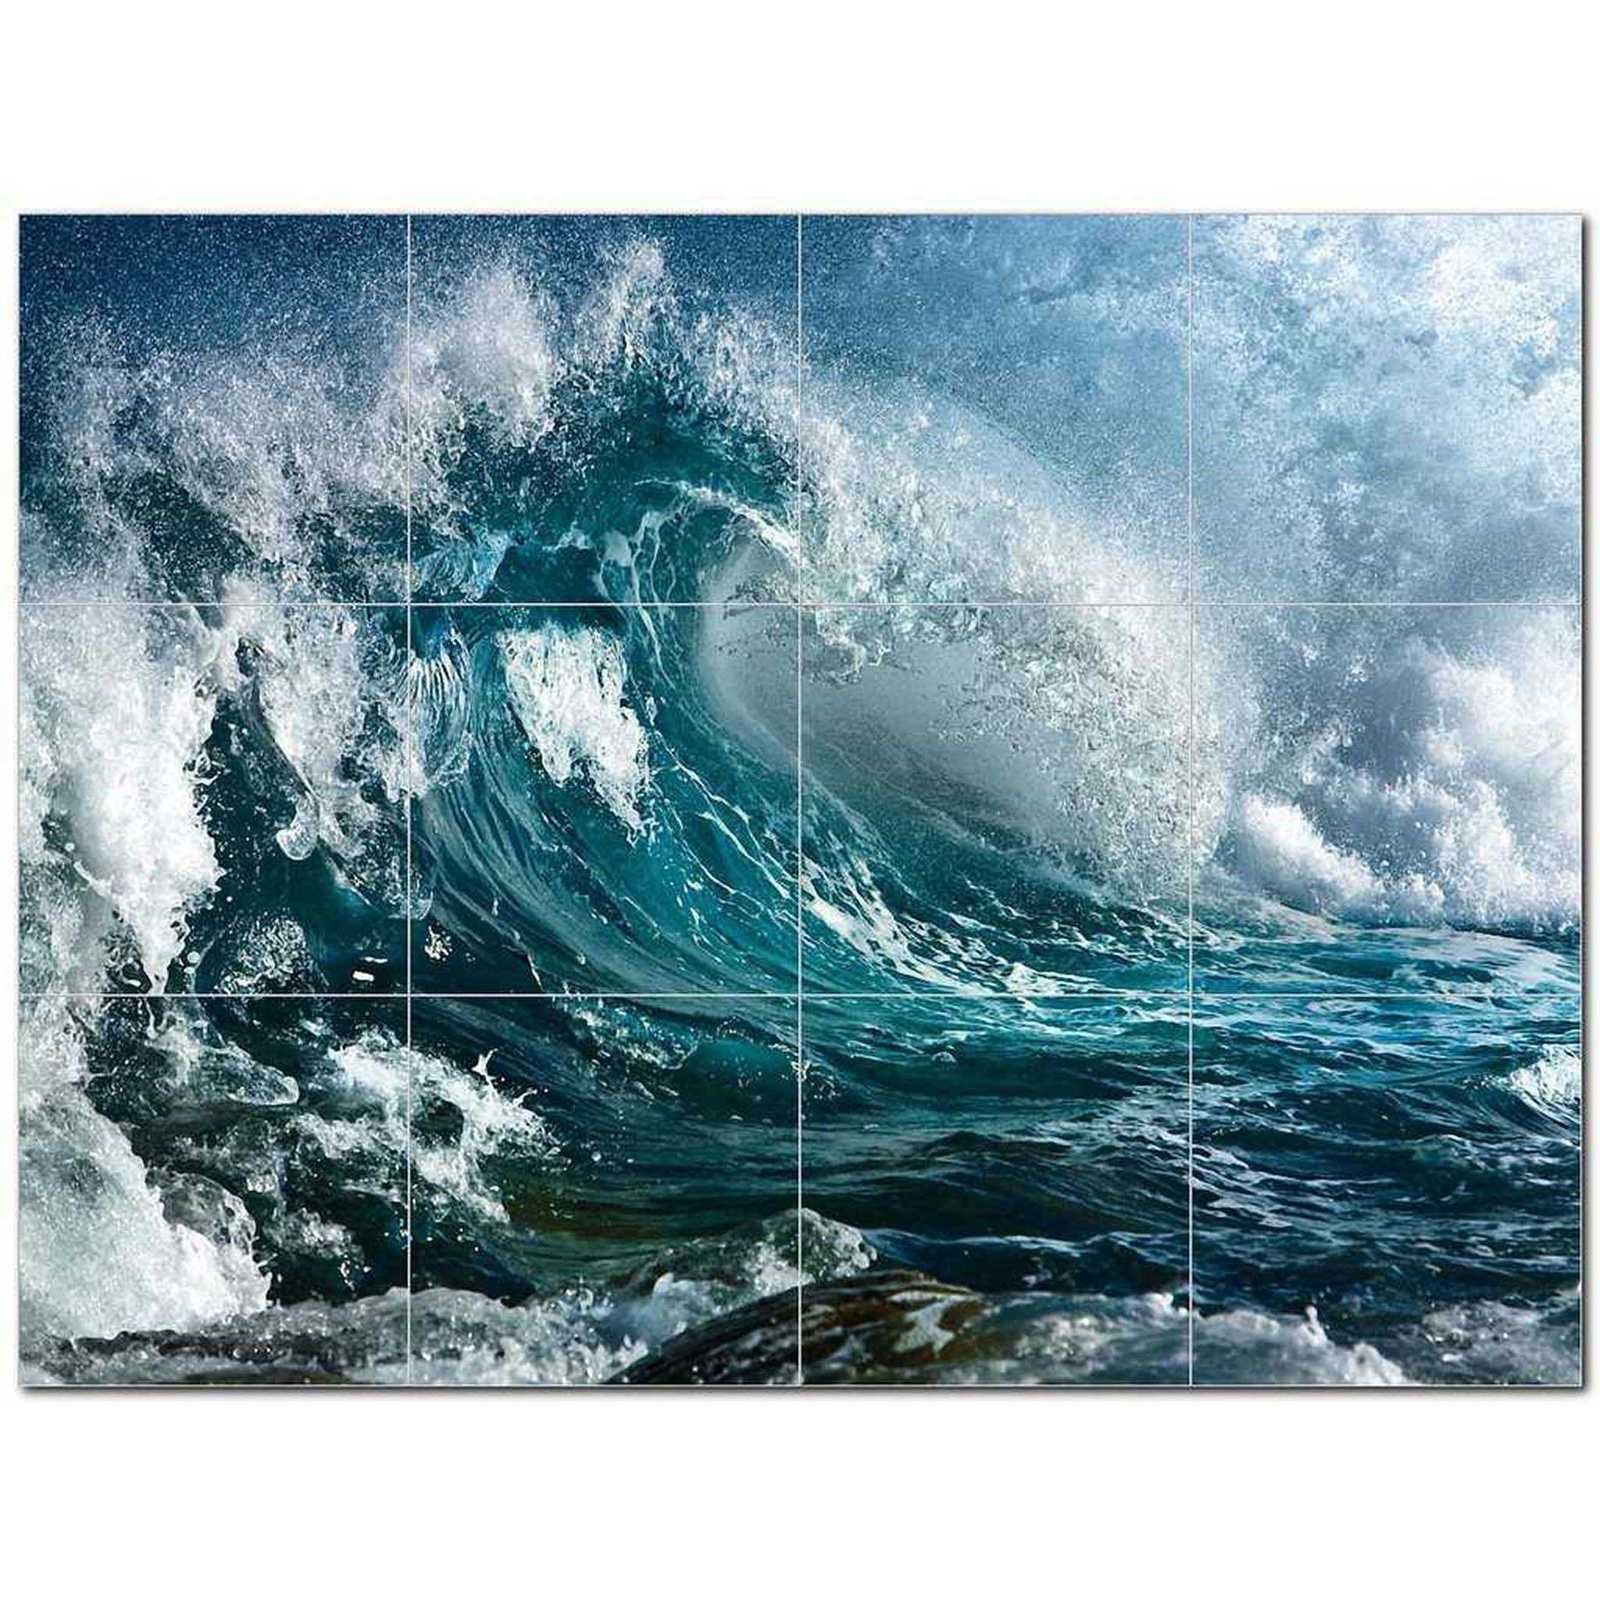 Primary image for Wave Picture Ceramic Tile Mural Kitchen Backsplash Bathroom Shower BAZ406312